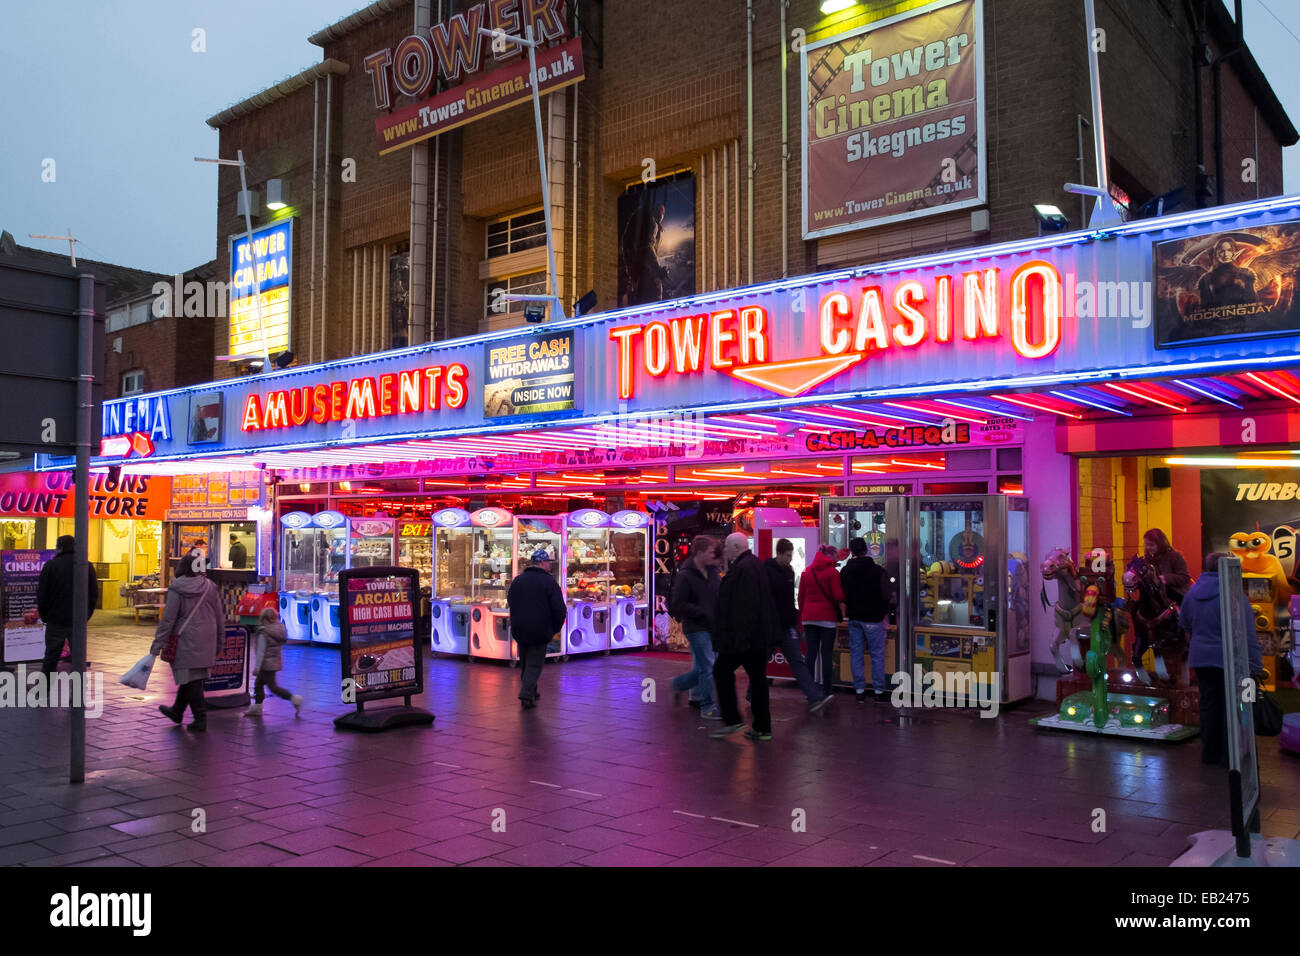 Tower Casino amusements near the sea front in Skegness - Stock Image